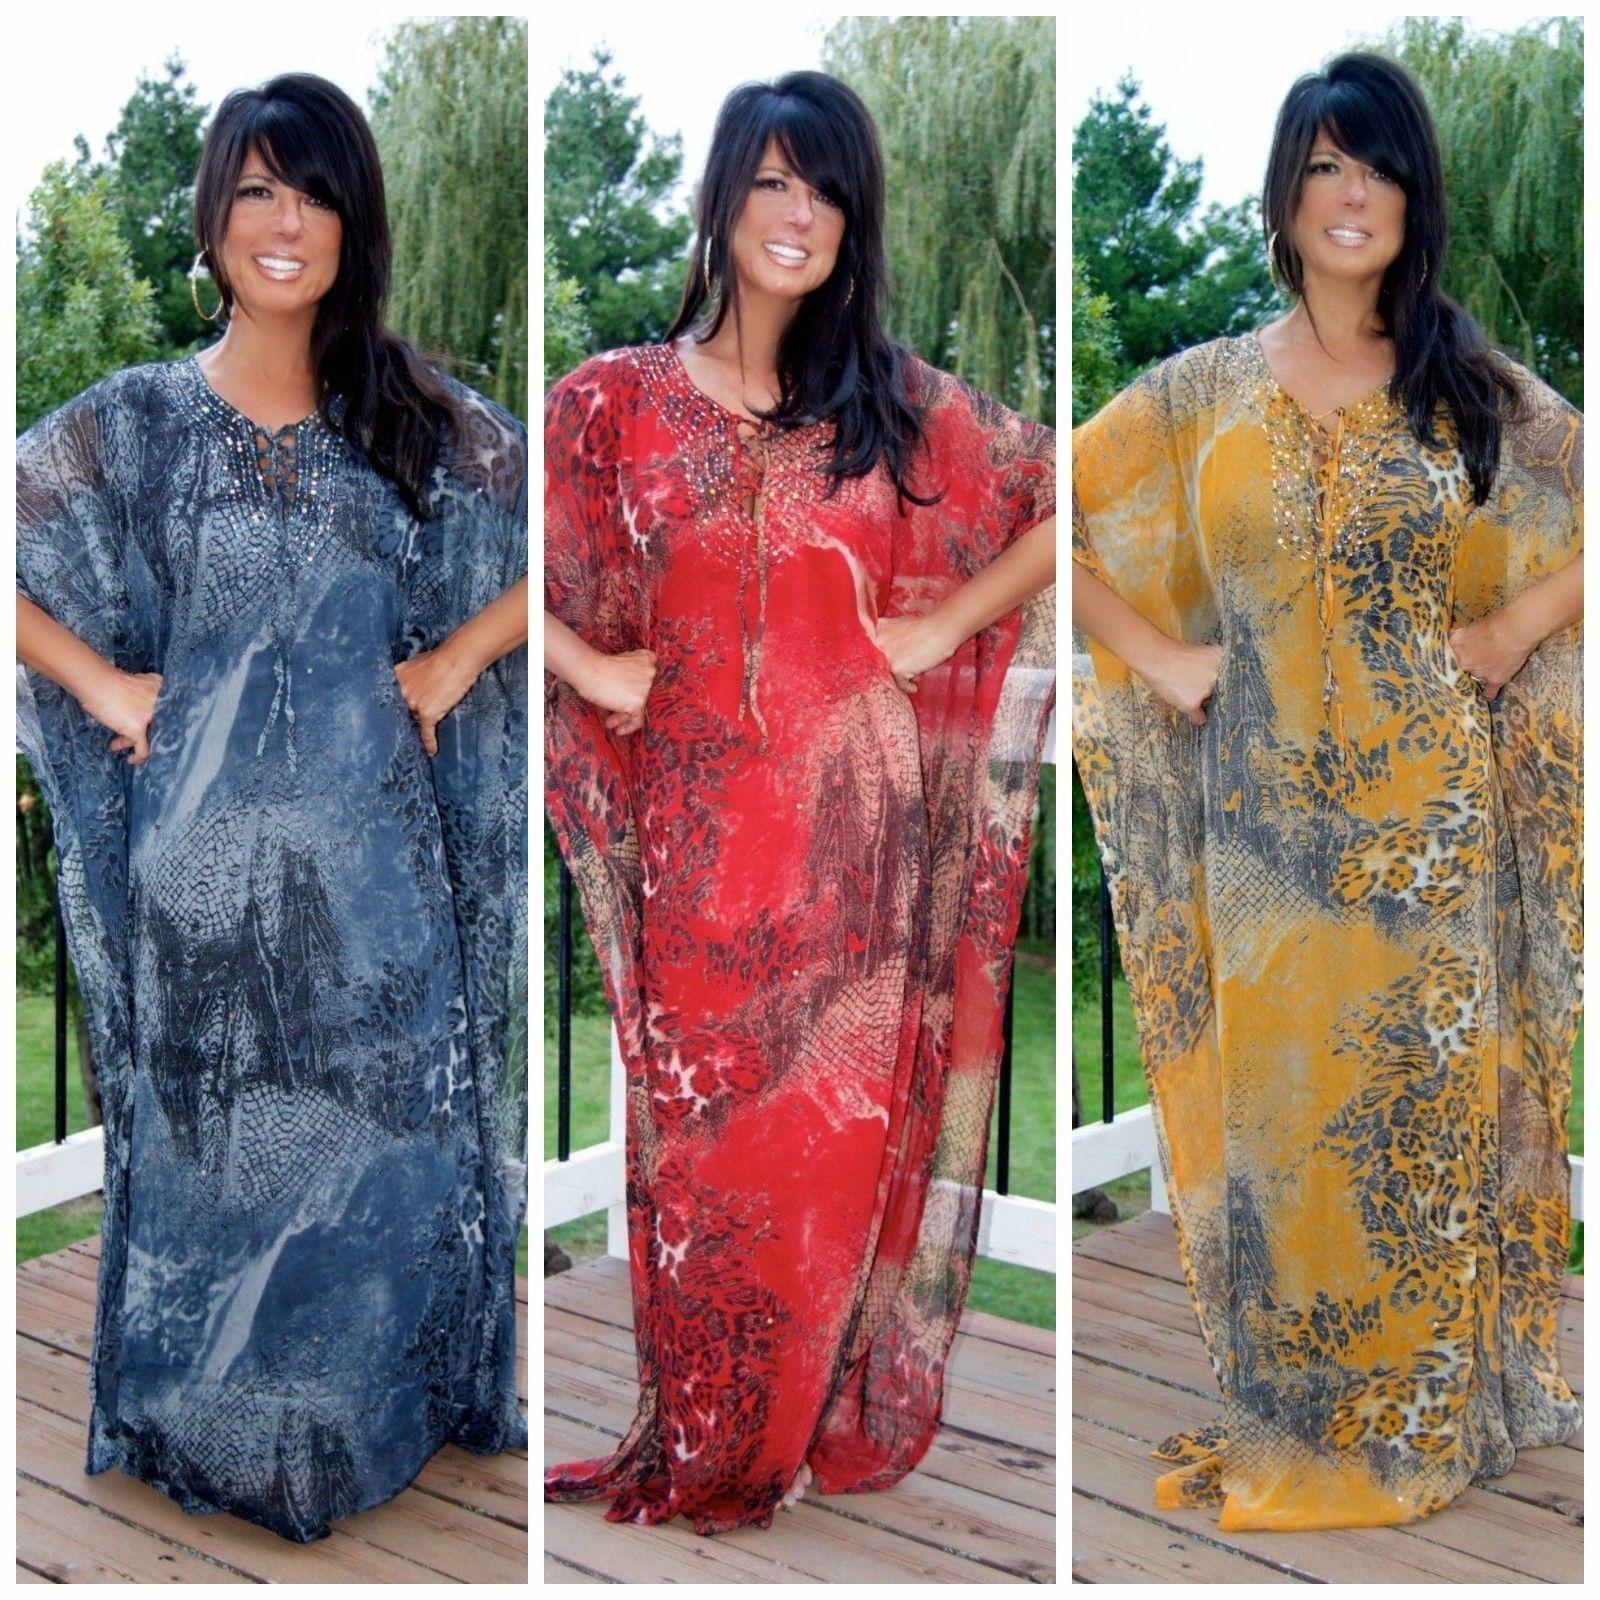 3X Summer Chic Maxi Dress with Sleeves